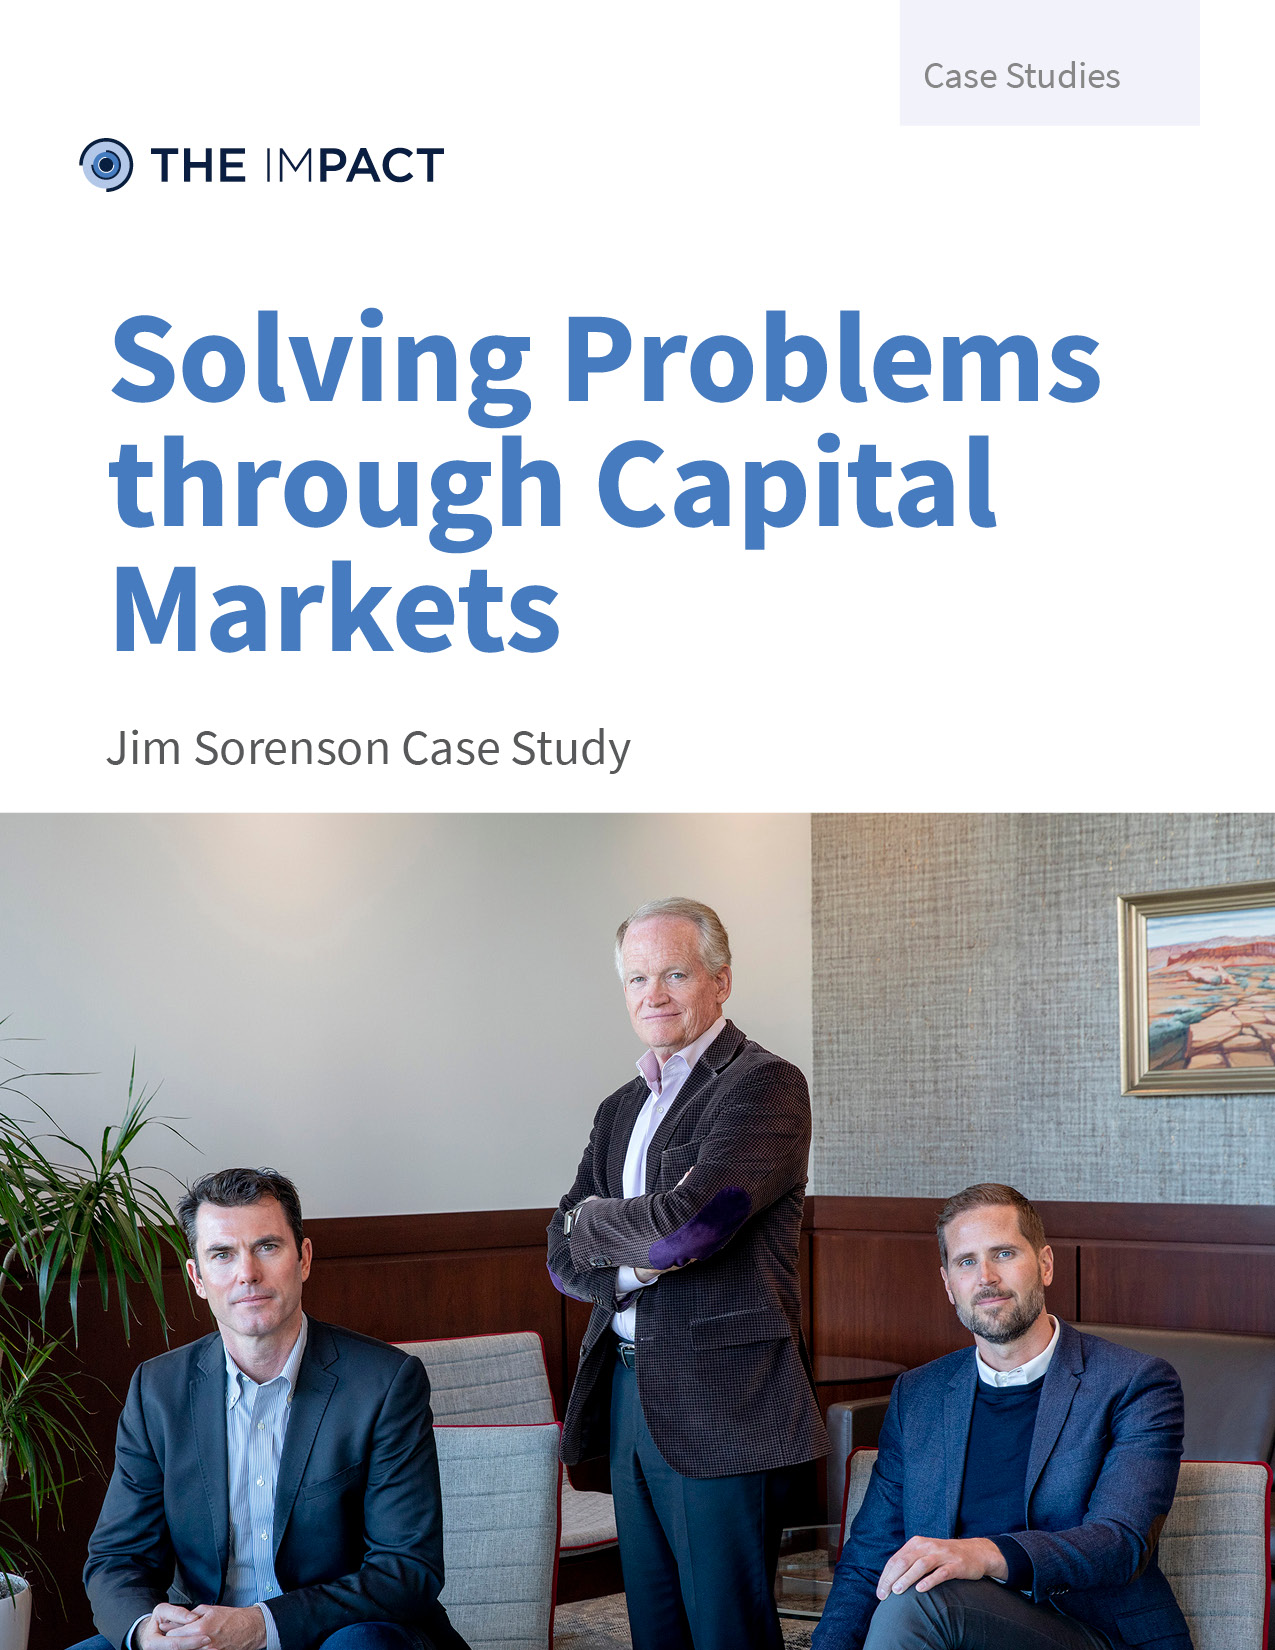 Solving Problems through Capital Markets. Jim Sorensen case study by The ImPact.